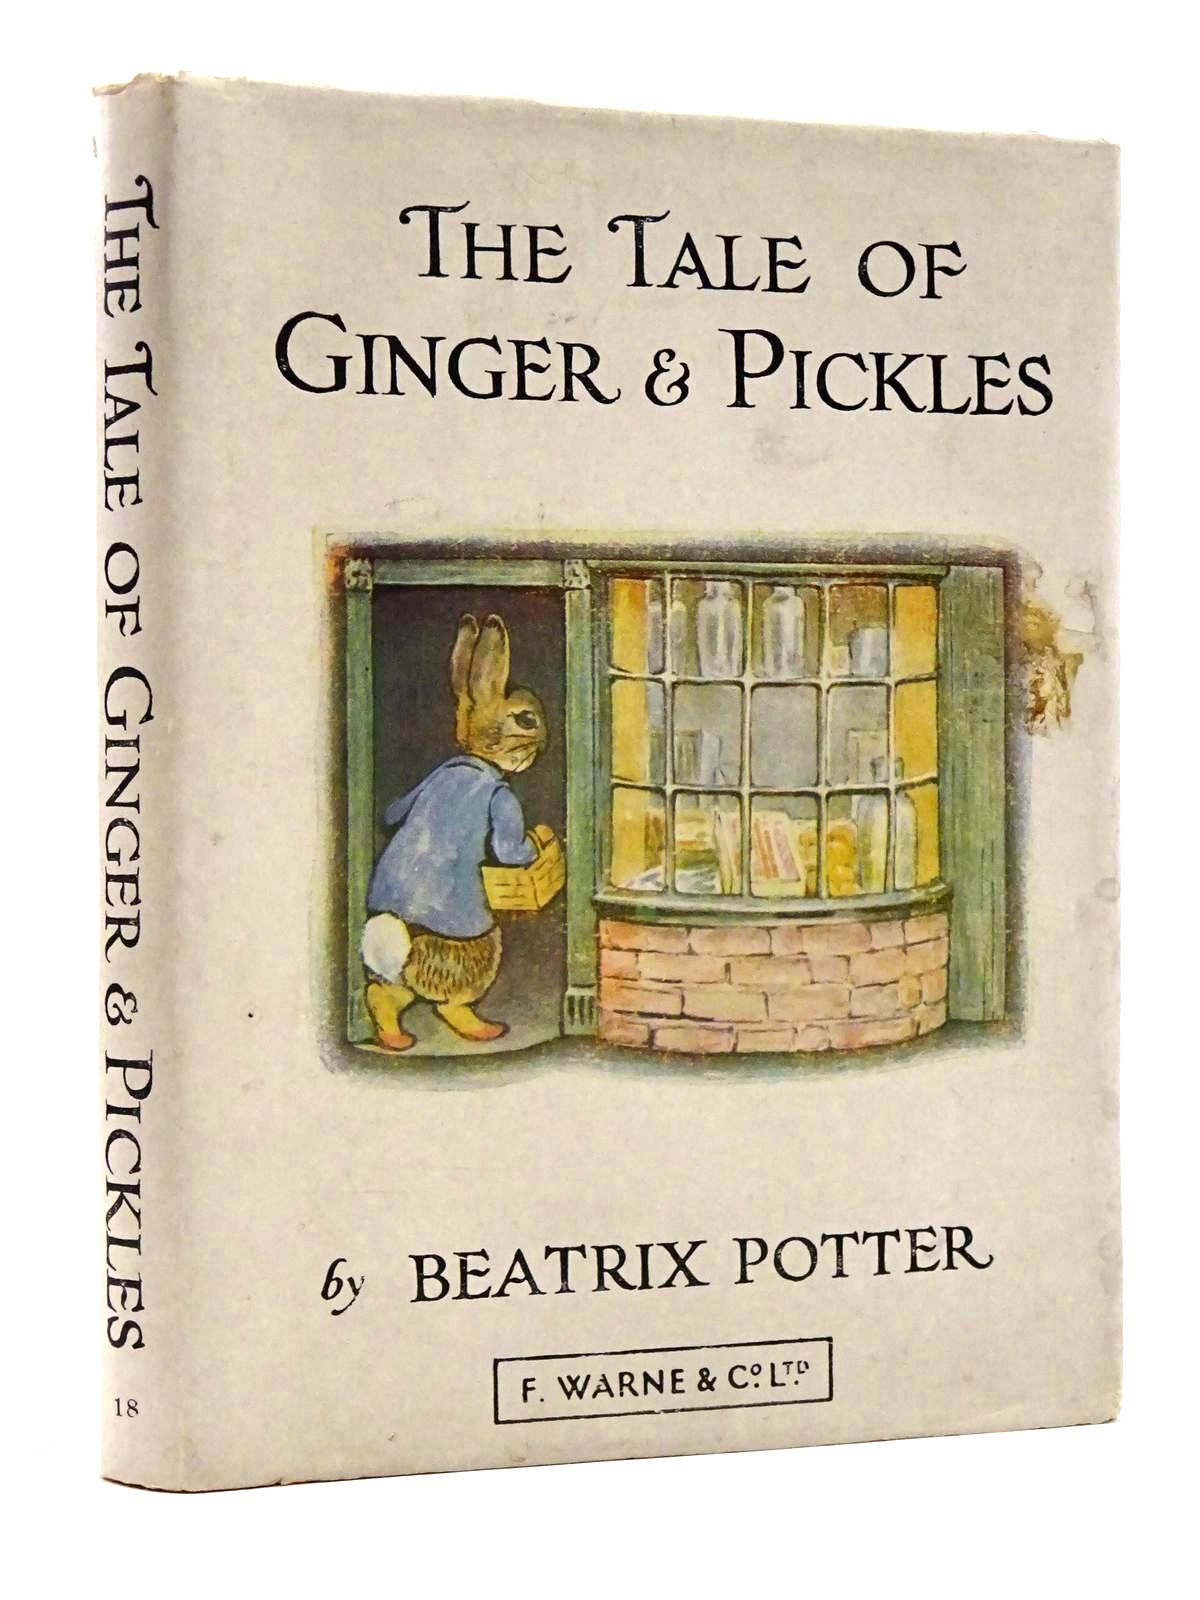 Photo of THE TALE OF GINGER & PICKLES written by Potter, Beatrix illustrated by Potter, Beatrix published by Frederick Warne & Co Ltd. (STOCK CODE: 2131309)  for sale by Stella & Rose's Books